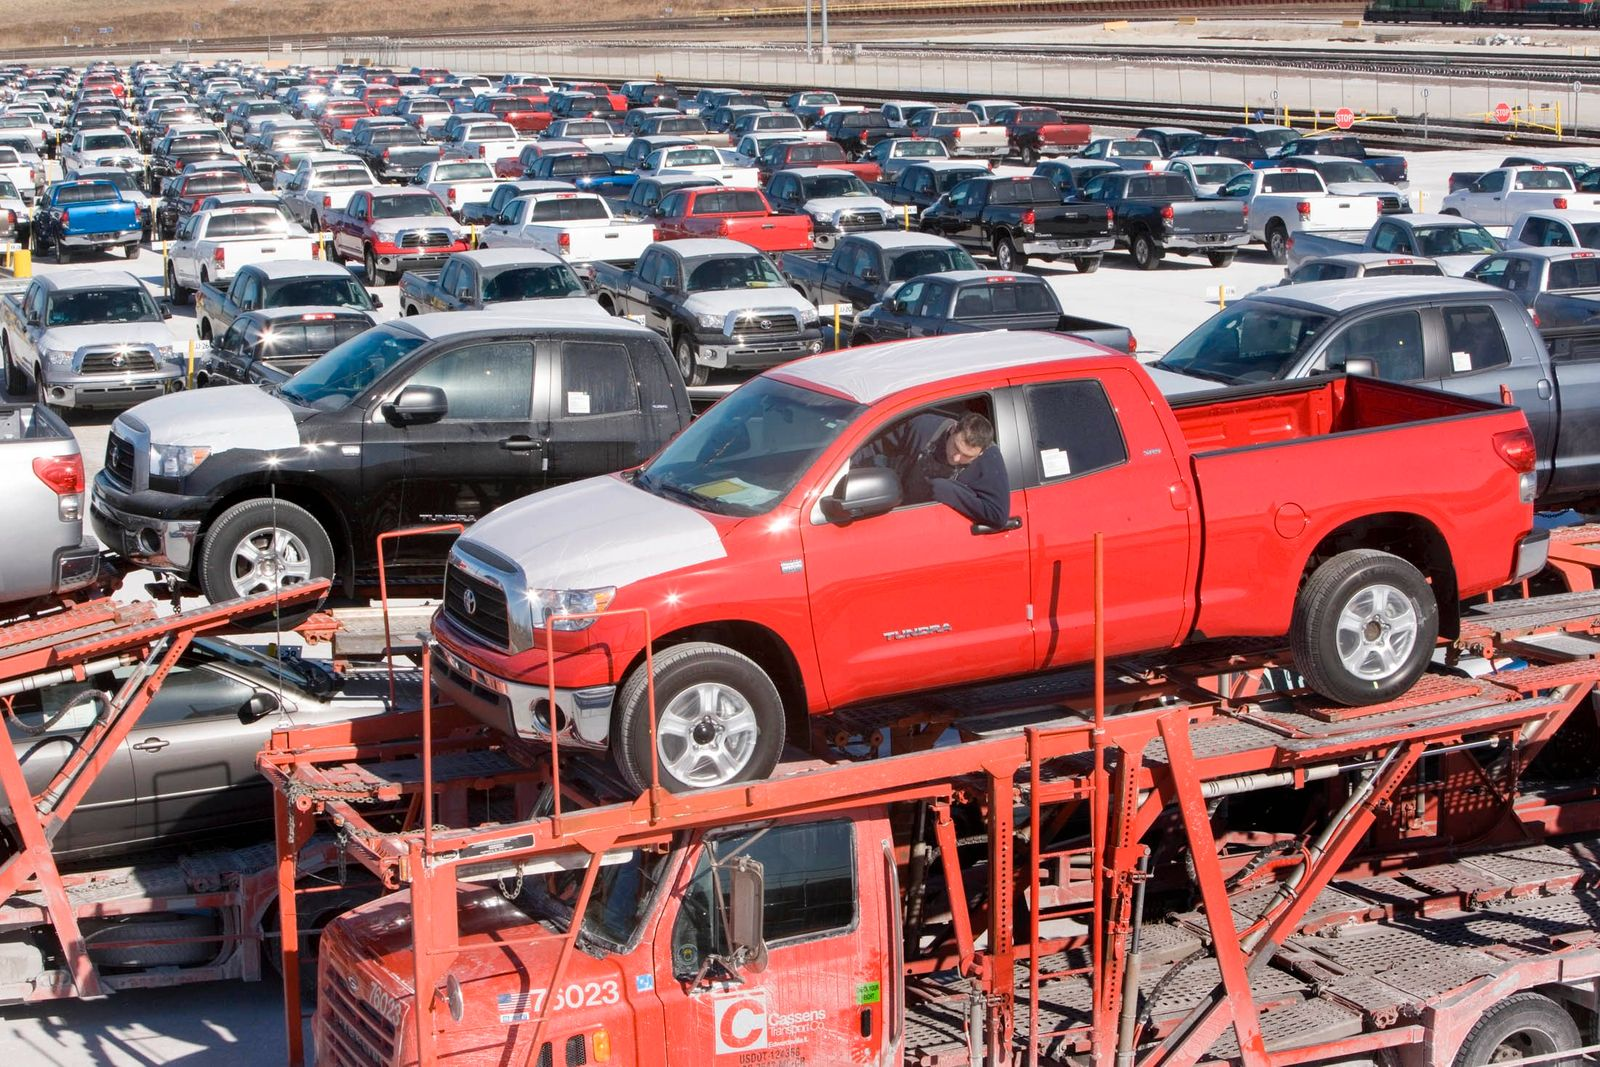 A Toyota Tundra pickup truck is loaded at storage facility in Elwood